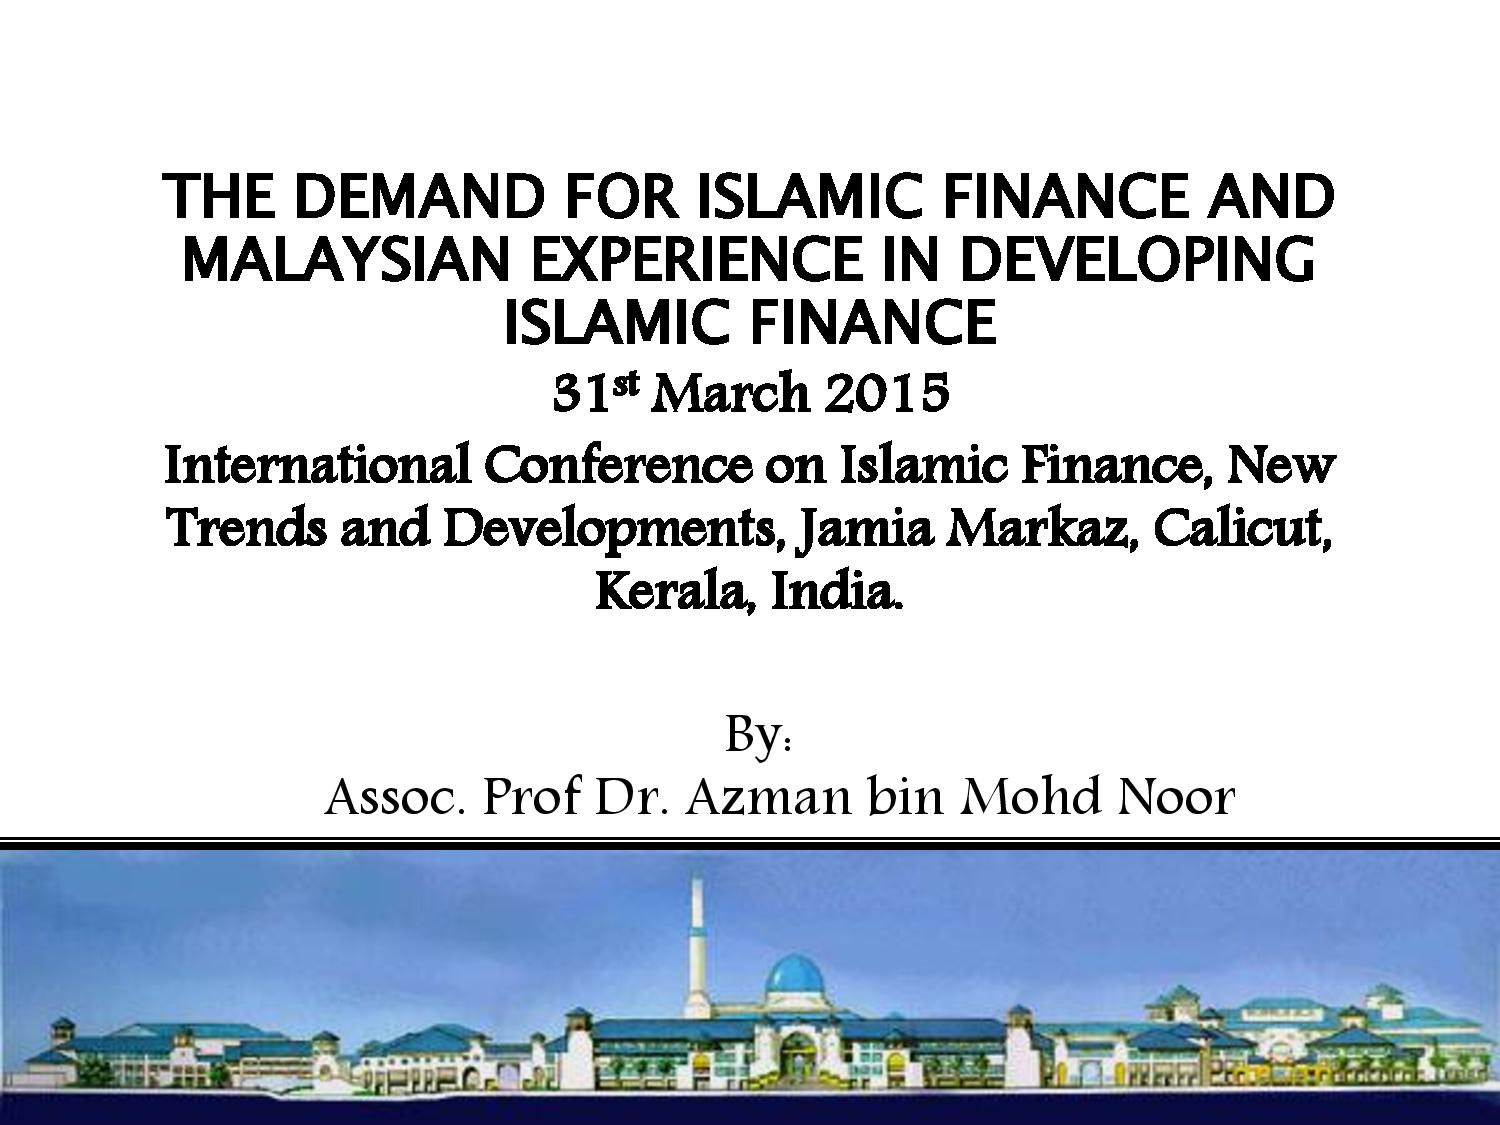 The-demand-for-Islamic-finance-and-Malaysian-experience-30032015-CALICUT-KERALA-page-001